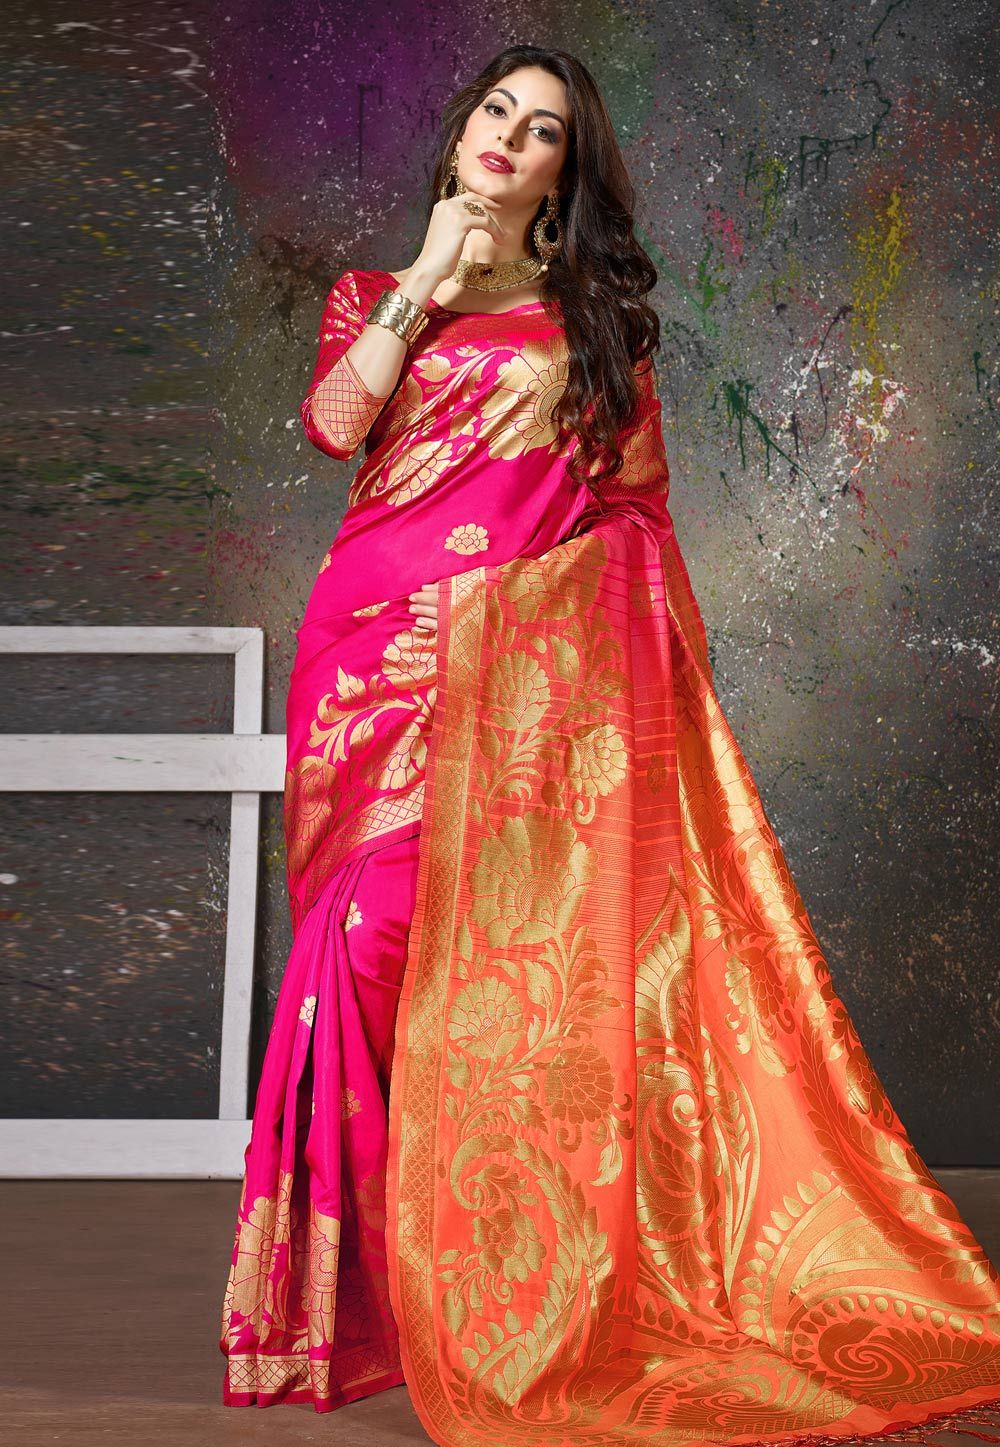 314253e43c Buy Magenta Cotton Saree With Blouse 160920 with blouse online at lowest  price from vast collection of sarees at Indianclothstore.com.